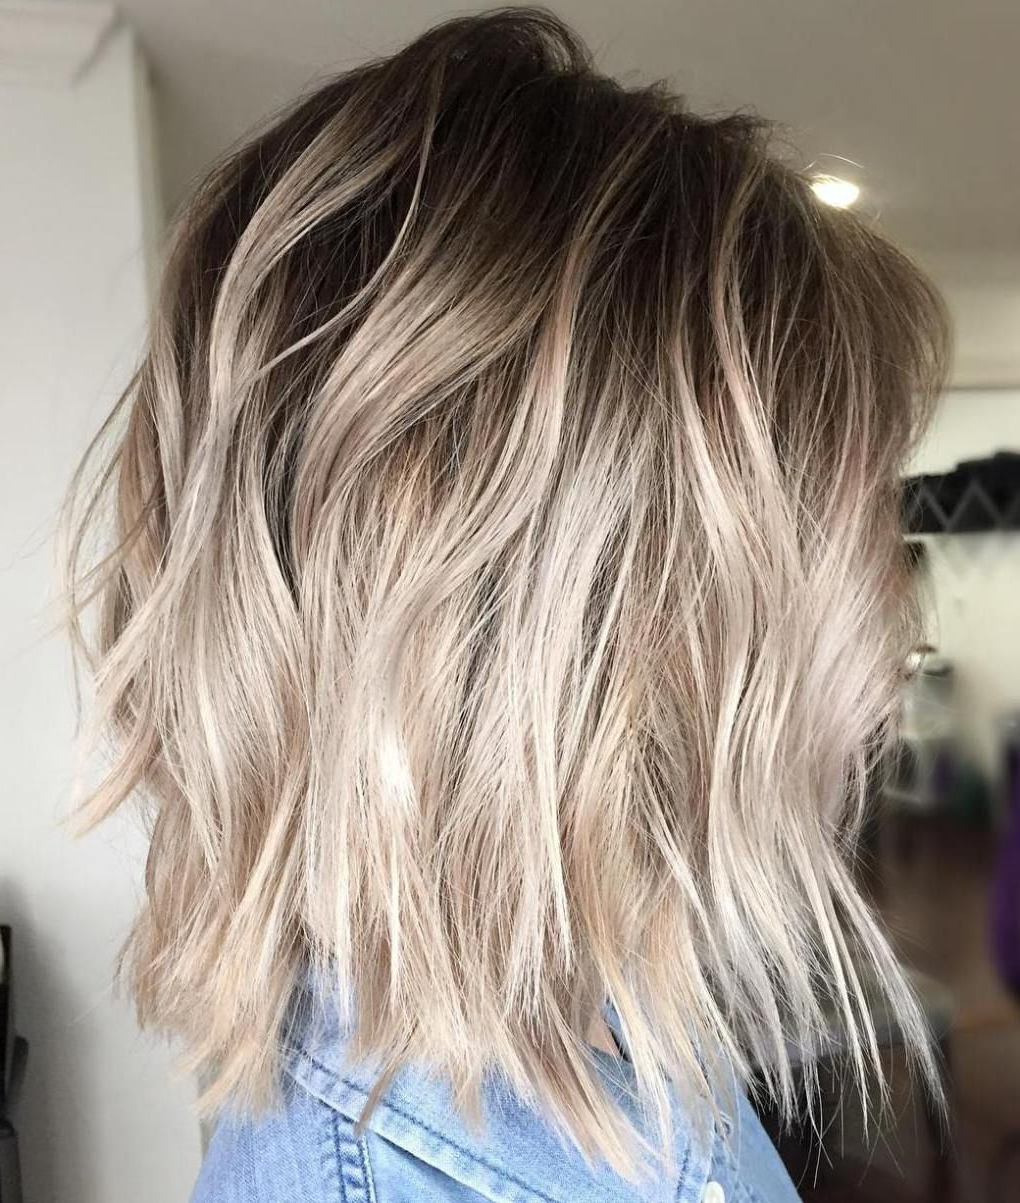 40 Beautiful Blonde Balayage Looks In 2018 | Hair | Pinterest | Hair Throughout White Bob Undercut Hairstyles With Root Fade (View 8 of 20)